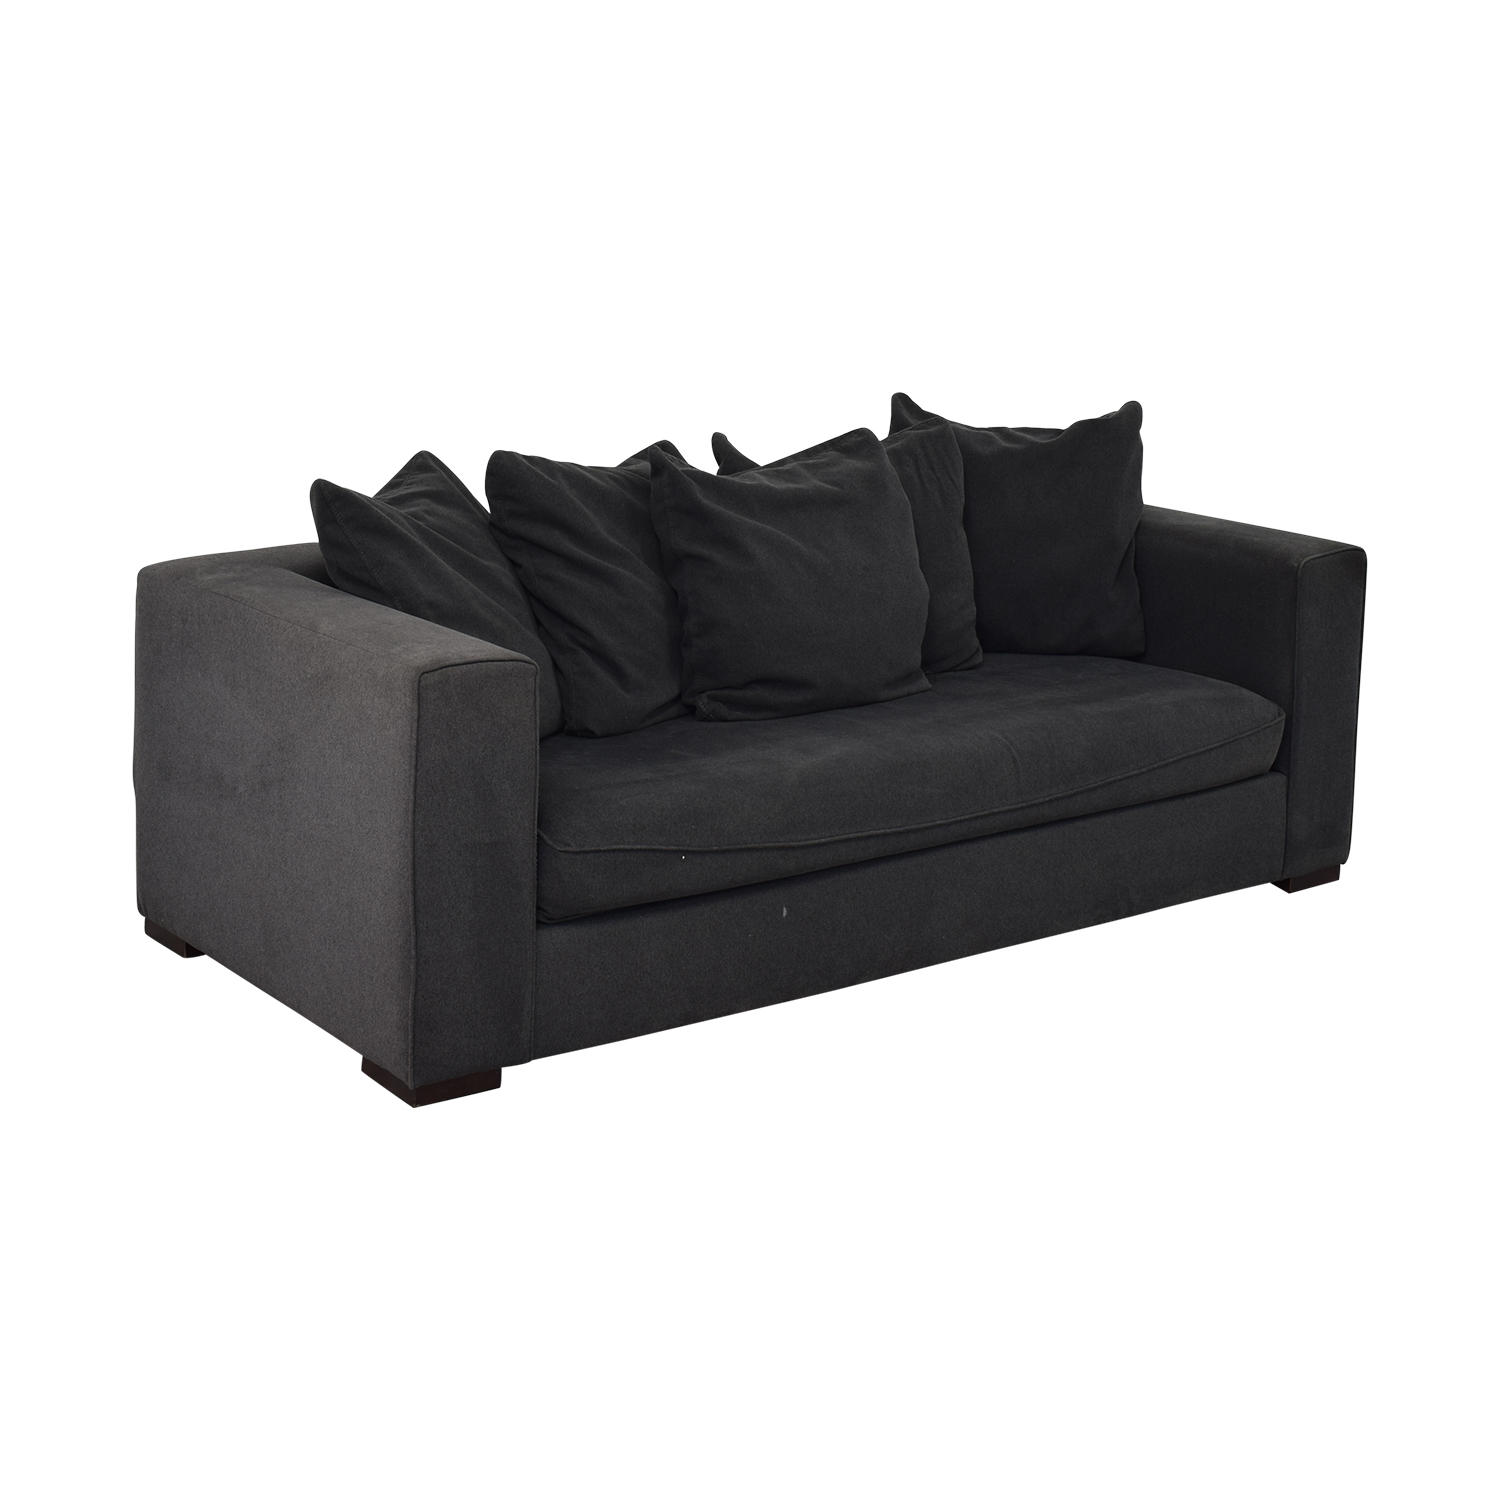 Square Sofa 53 Off West Elm West Elm Square Arm Sofa Sofas